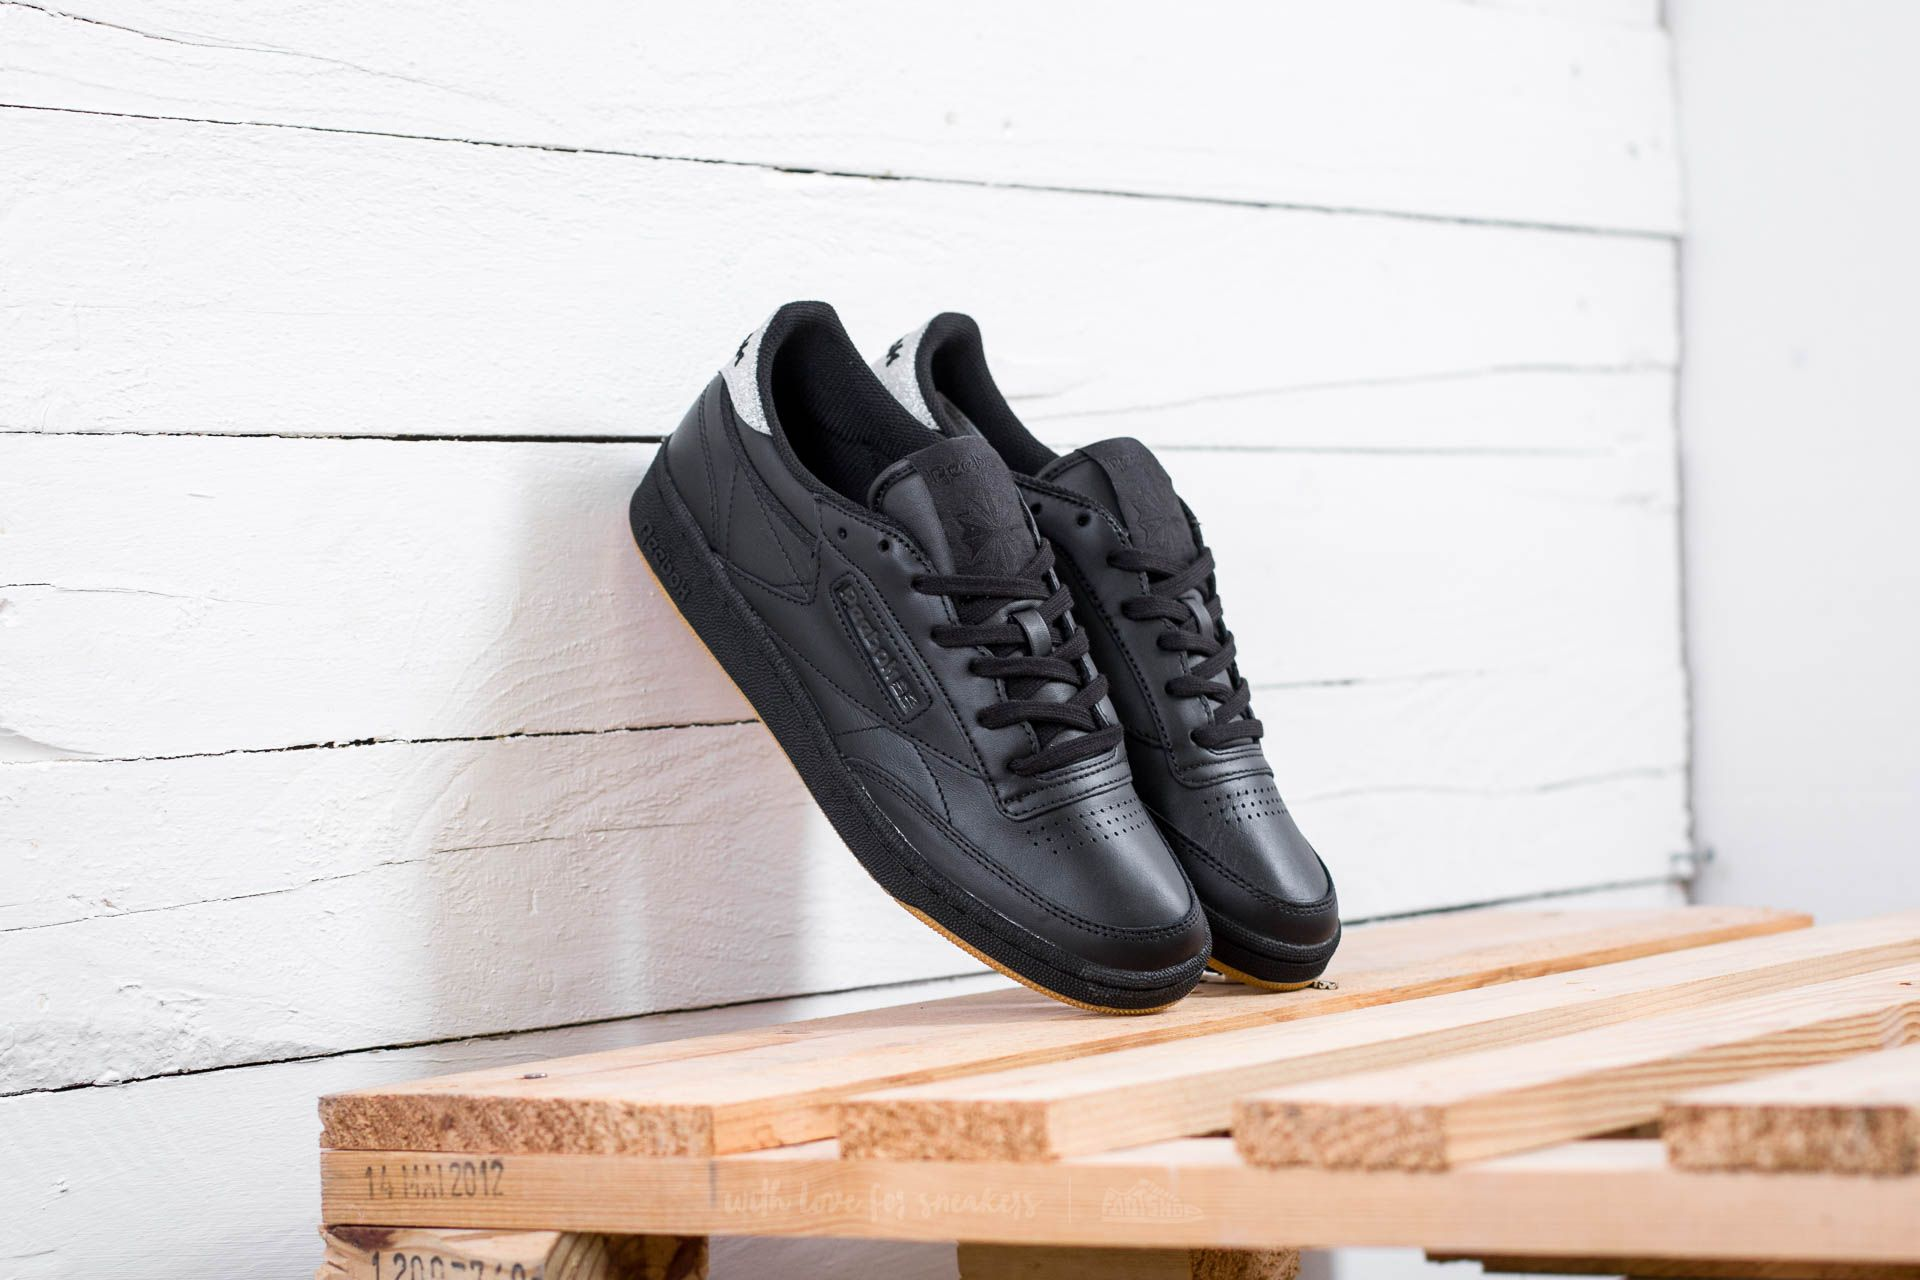 48732ed496c81 Reebok Club C 85 Diamond W Black  Gum